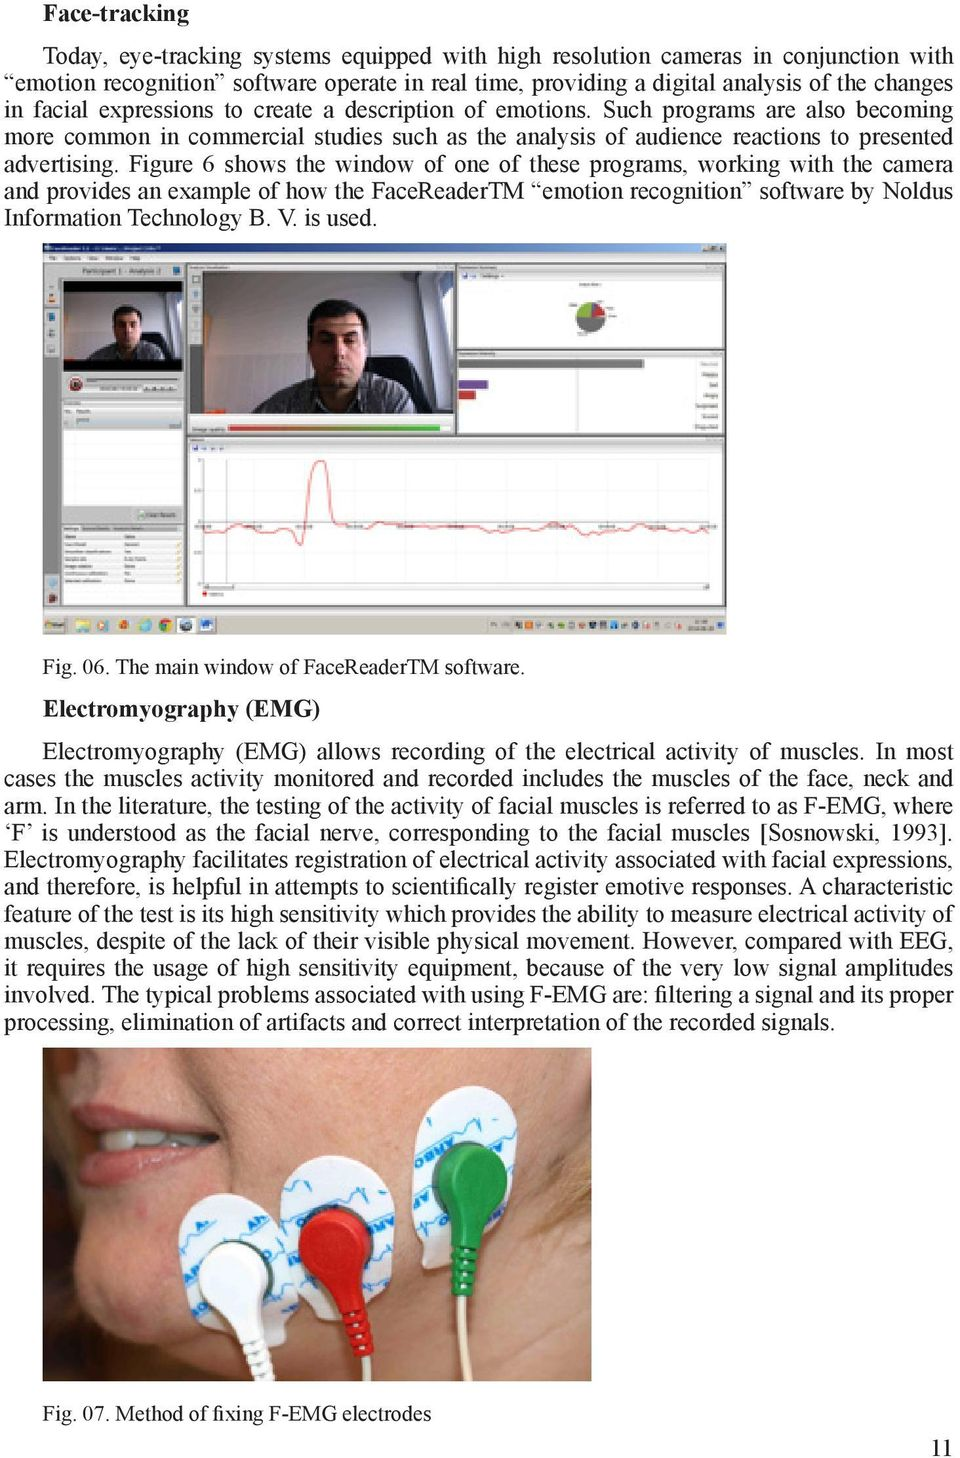 Figure 6 shows the window of one of these programs, working with the camera and provides an example of how the FaceReaderTM emotion recognition software by Noldus Information Technology B. V. is used.